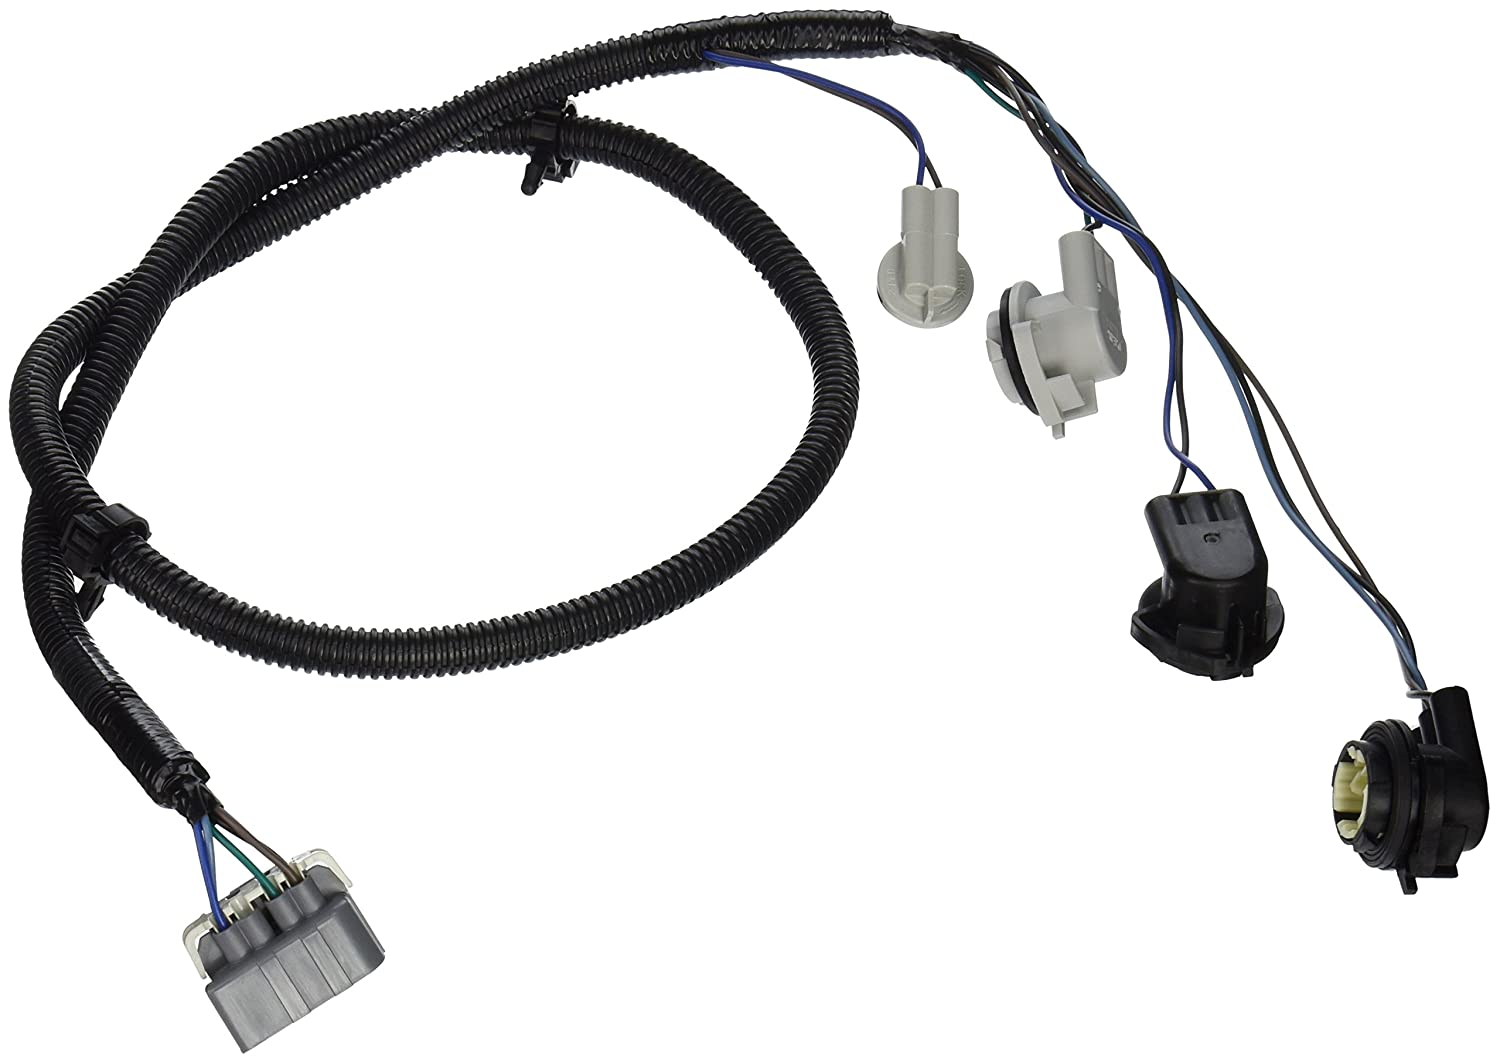 81sfkEXtmvL._SL1500_ amazon com genuine gm 16531401 tail lamp wiring harness automotive GM Turn Signal Wiring at aneh.co